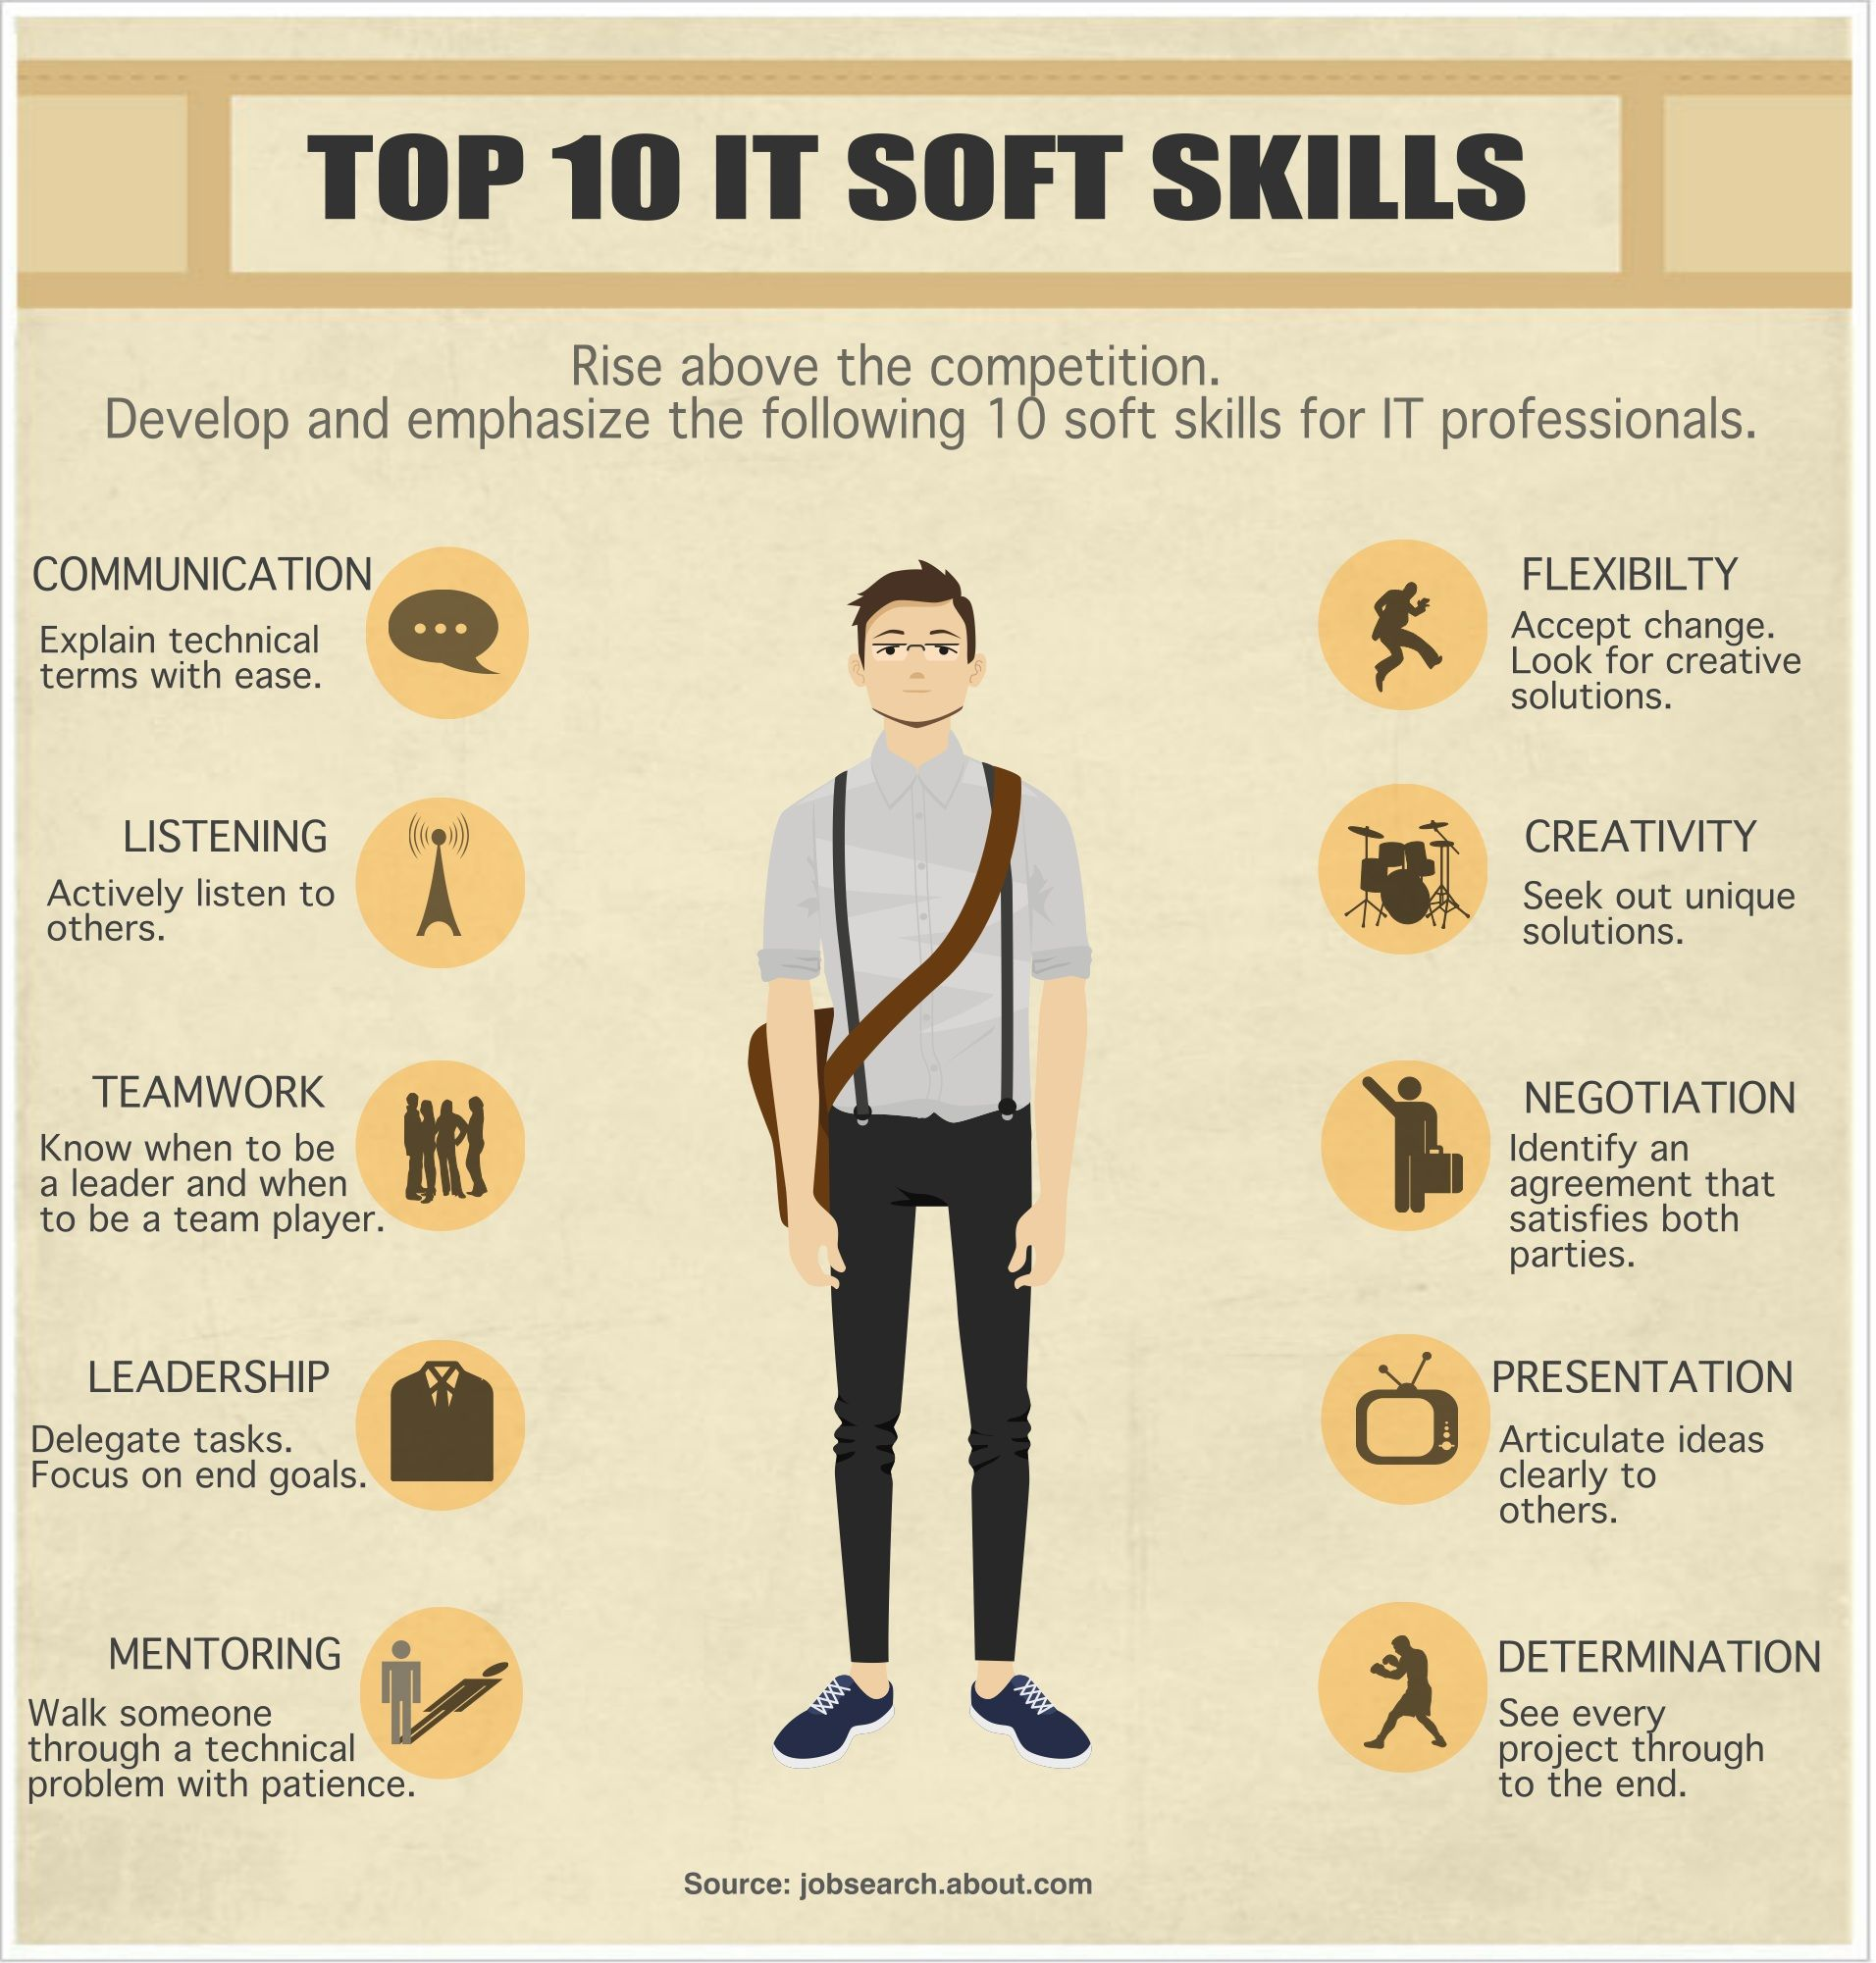 top it soft skills to be to work and the o jays developing these skills and emphasizing them in your job application and interview will help you rise